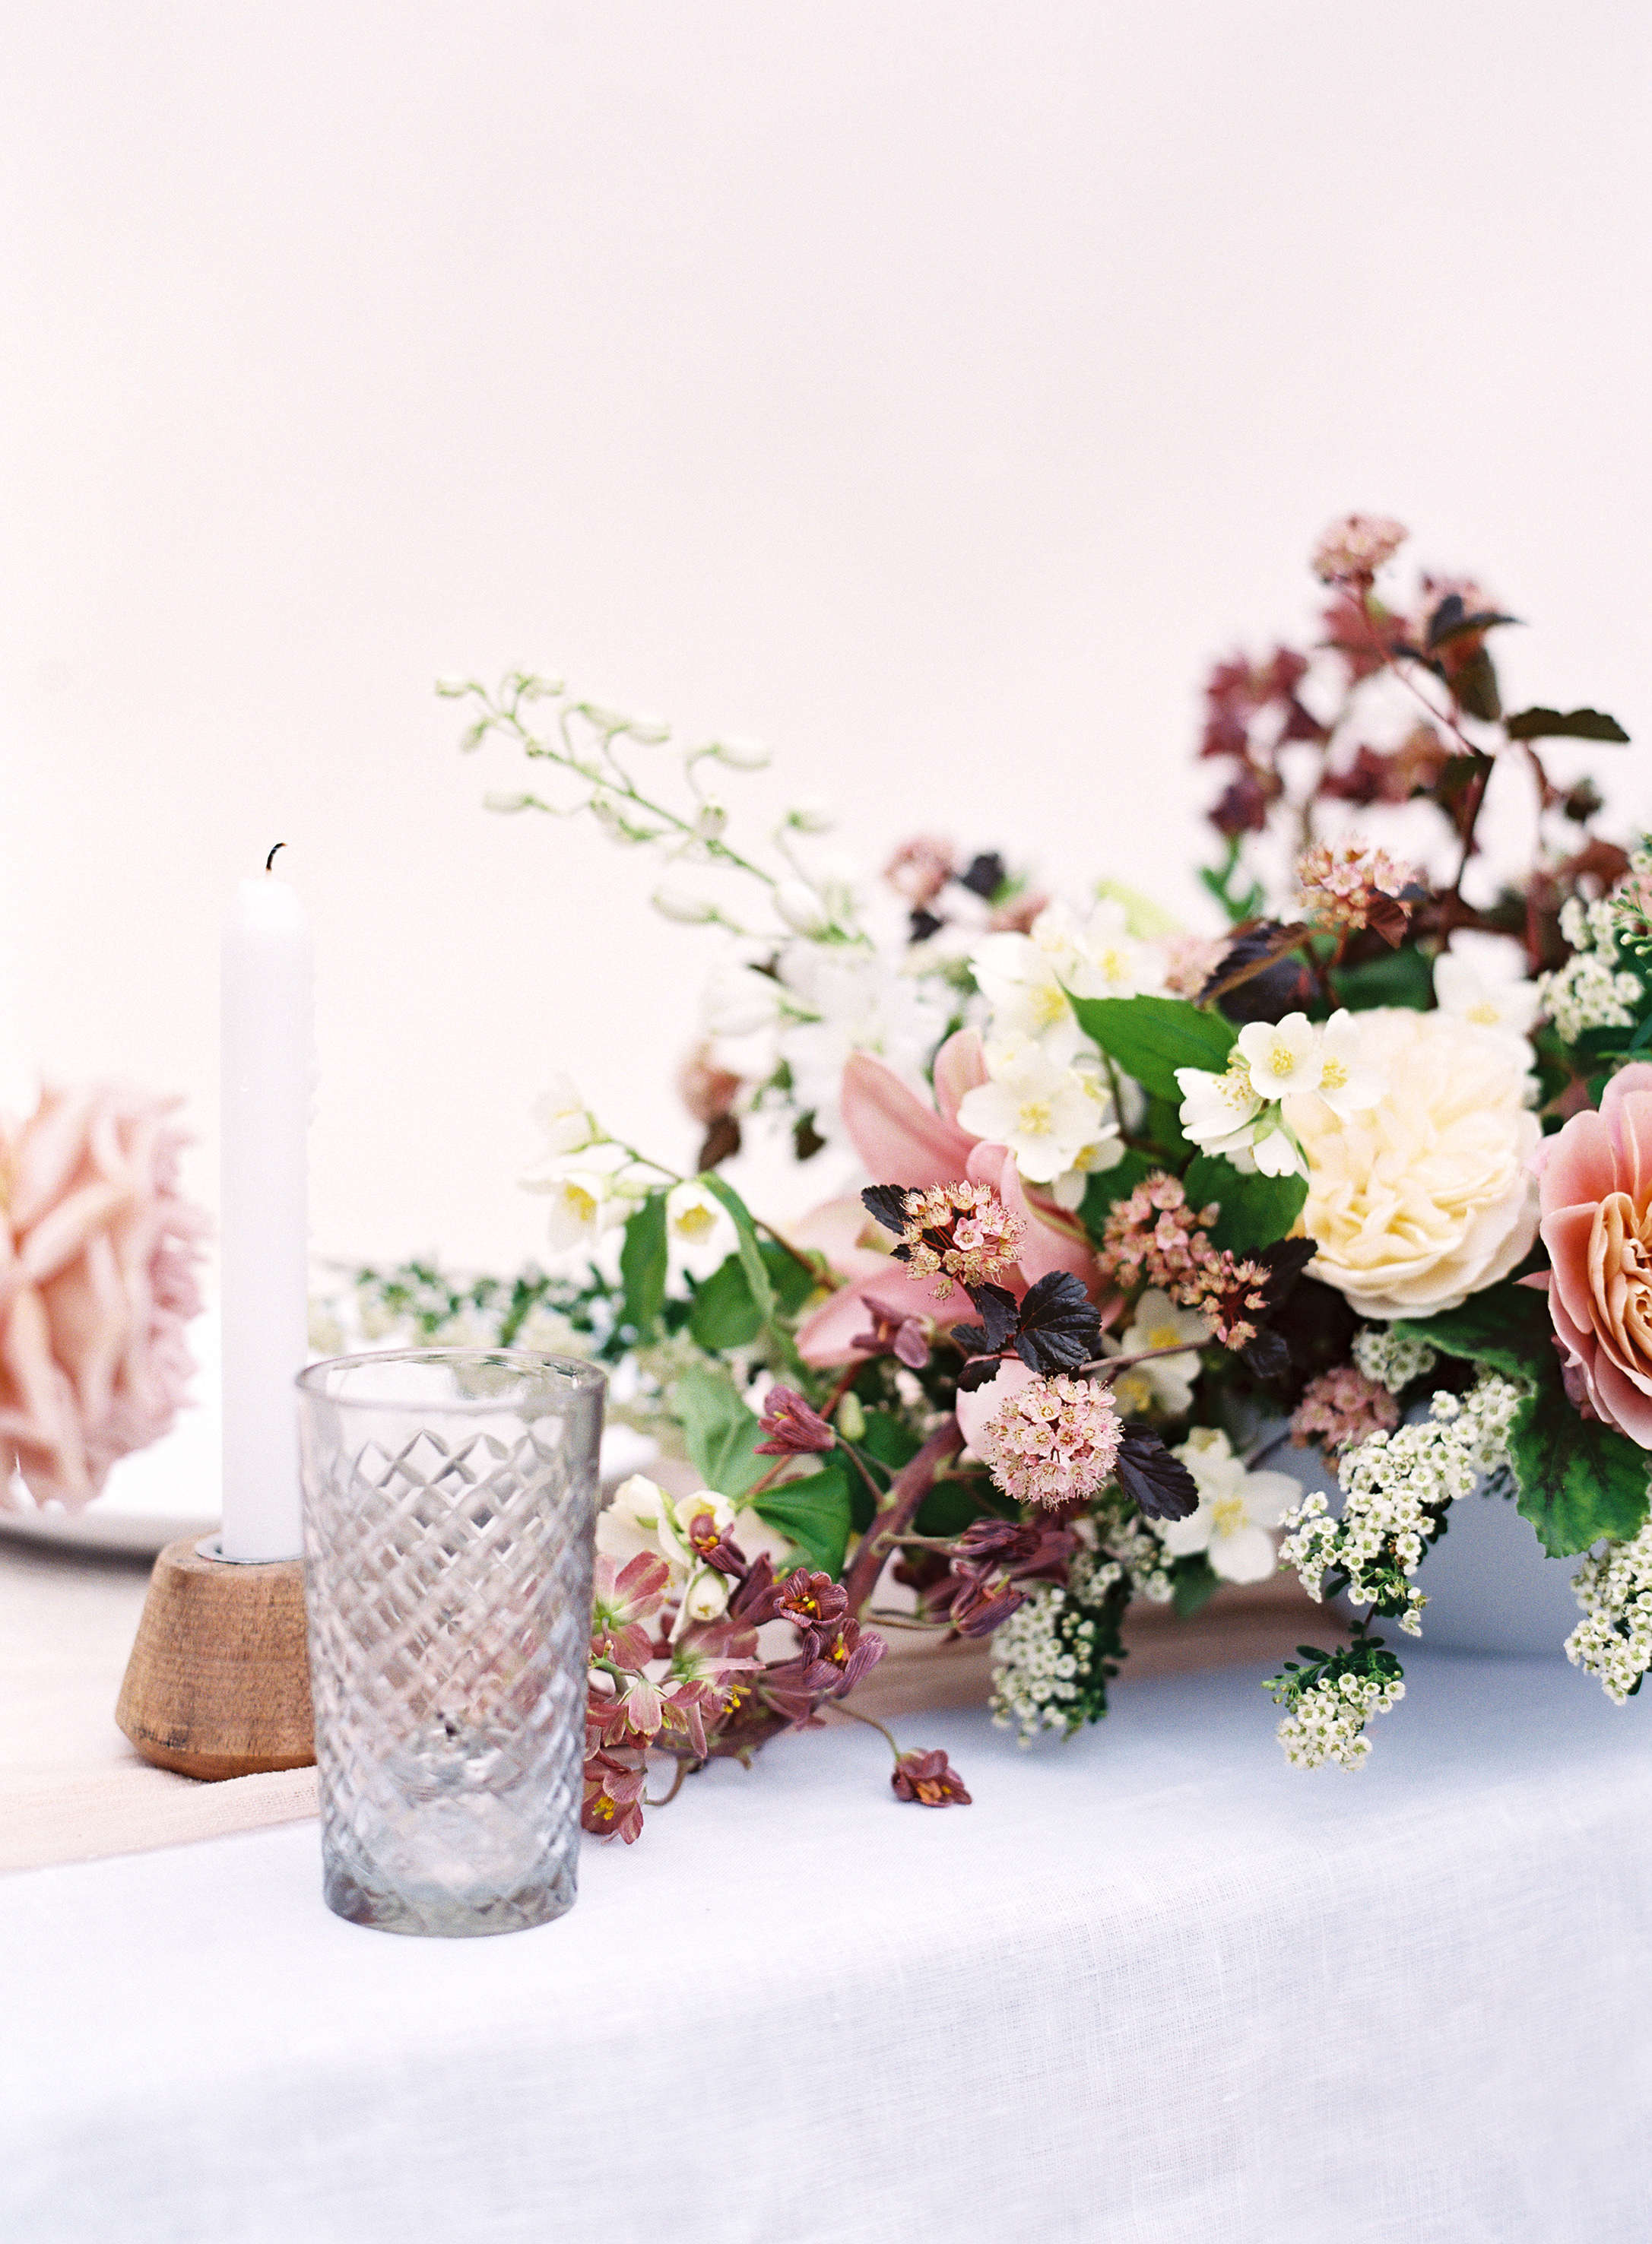 Photo by Christine Doneé Floral by Ellamah Modern Rustic Tablescape_11.jpg